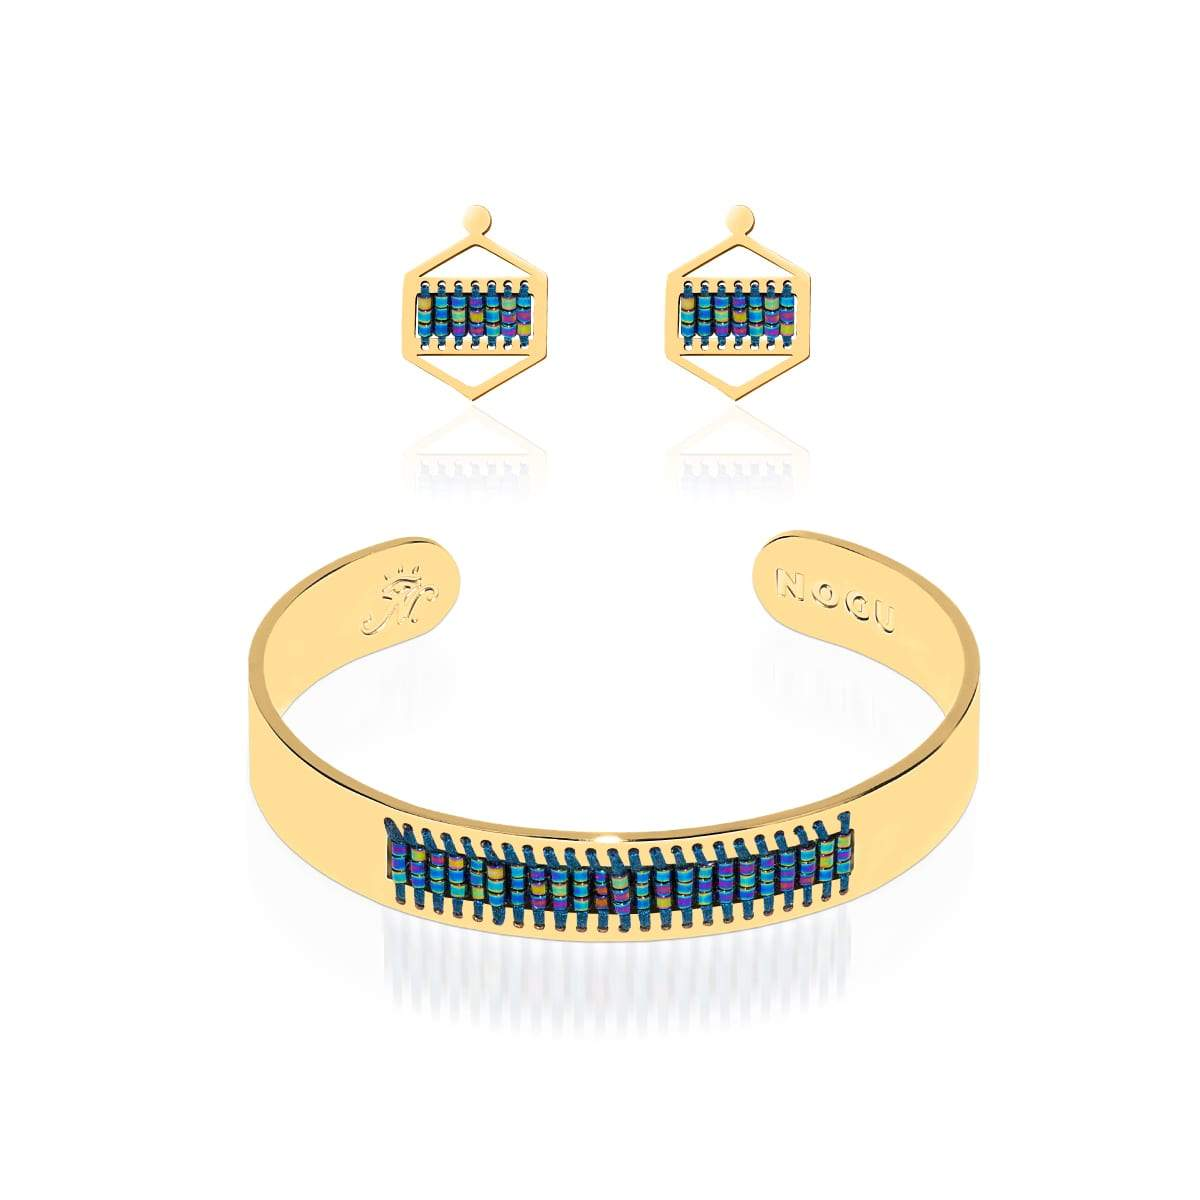 Manhattan Beach | Or 18 carats | Ensemble de boucles d'oreilles Boho Bangle